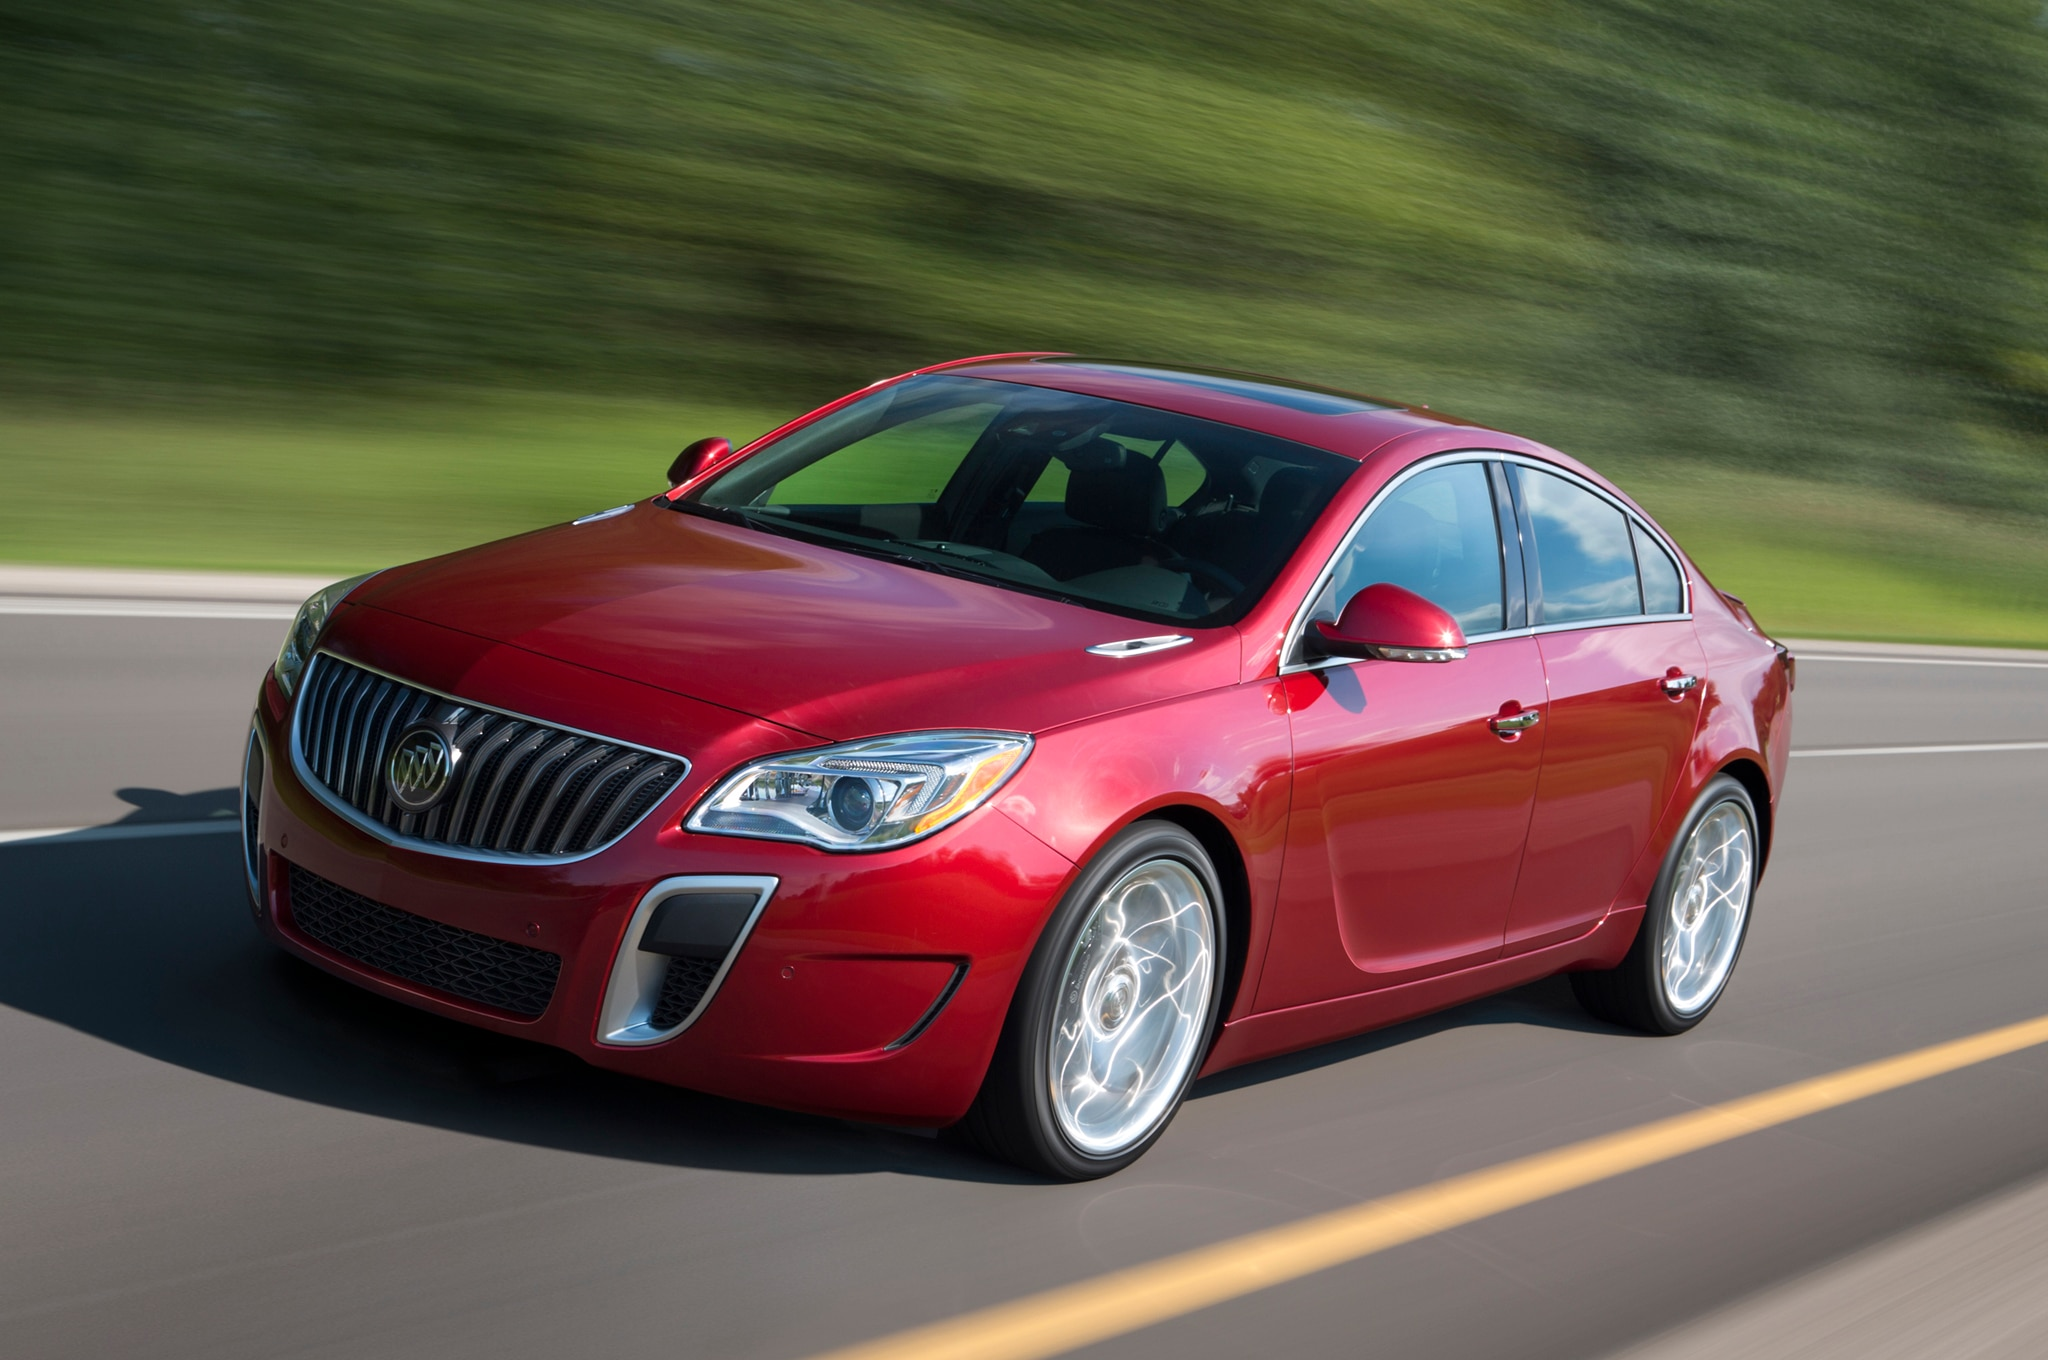 2014 Buick Regal Gs Front Three Quarters1